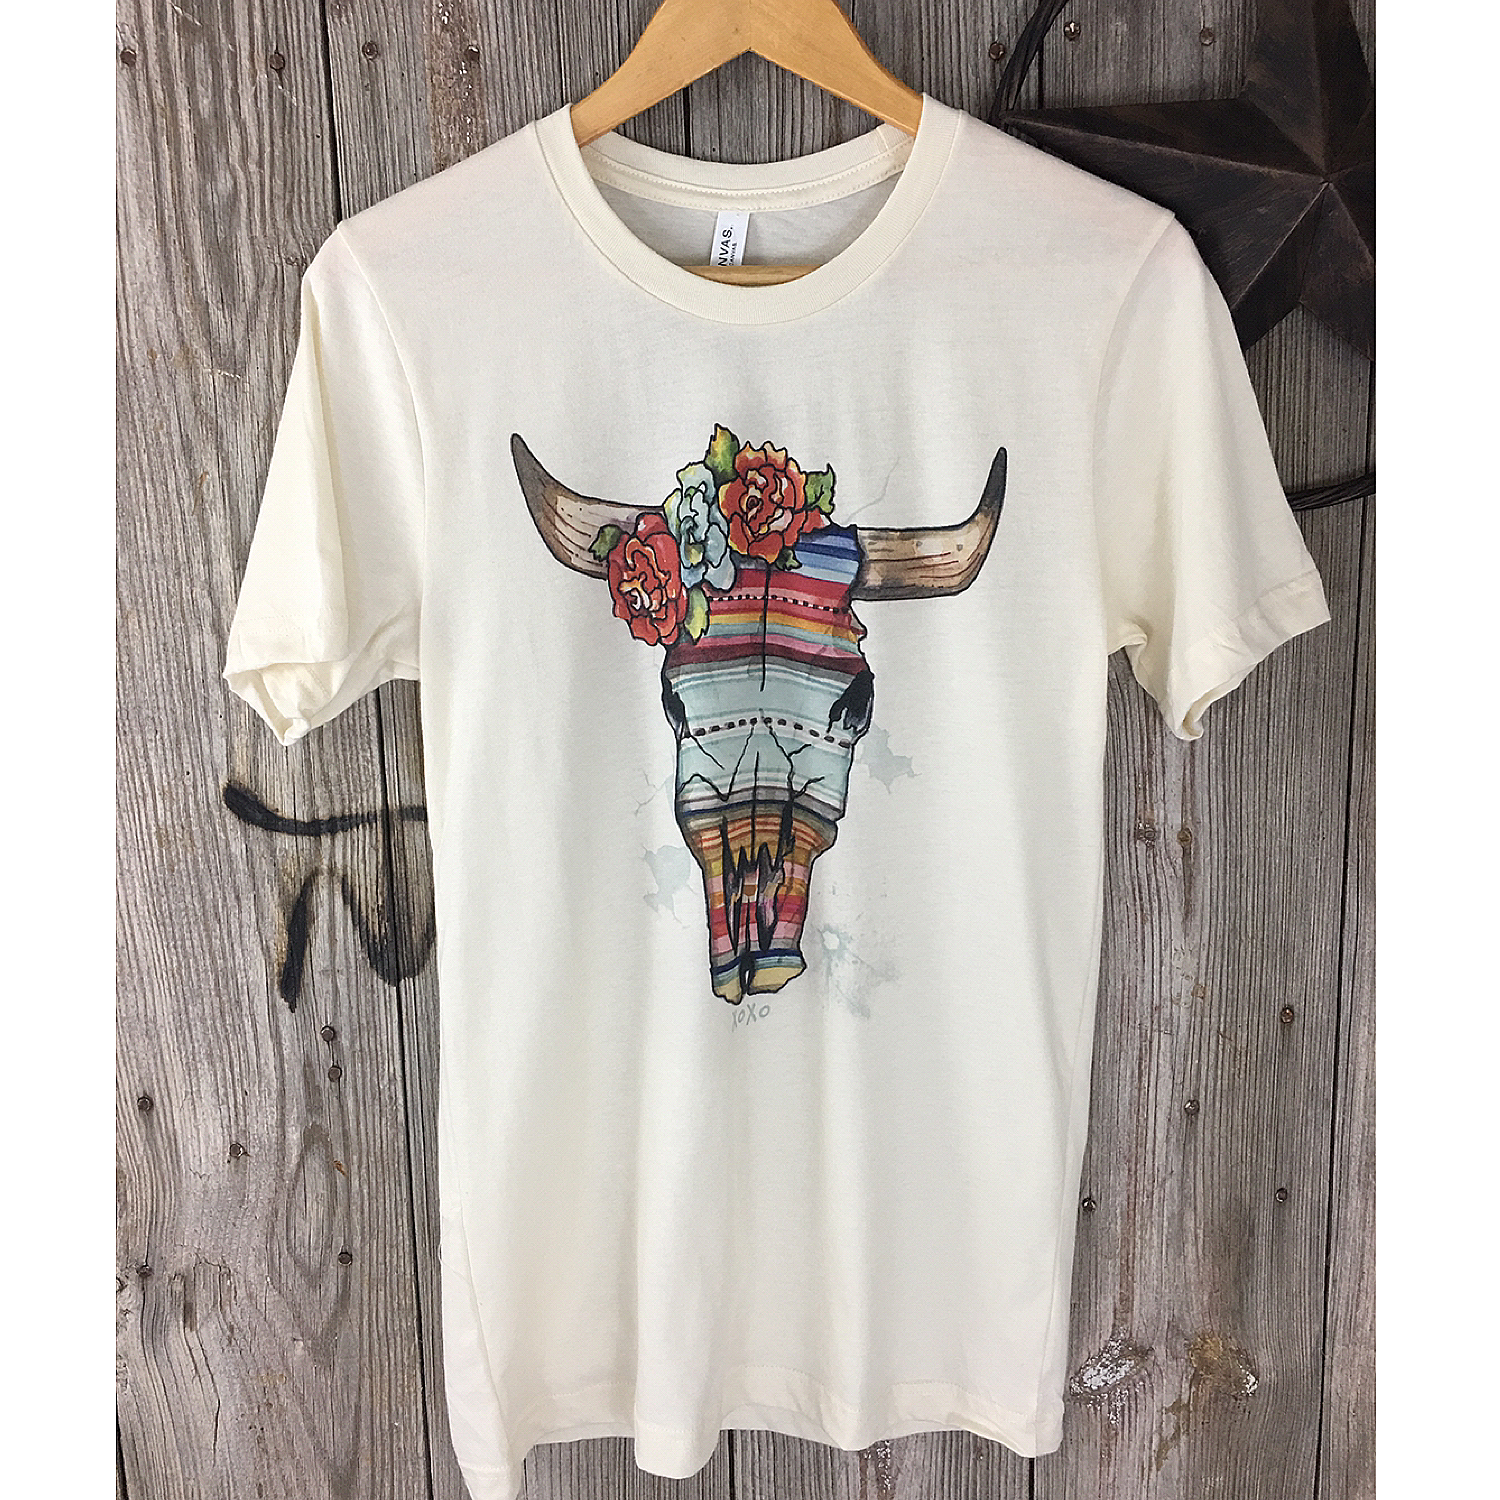 Serape Cowskull Tee from XOXO Art